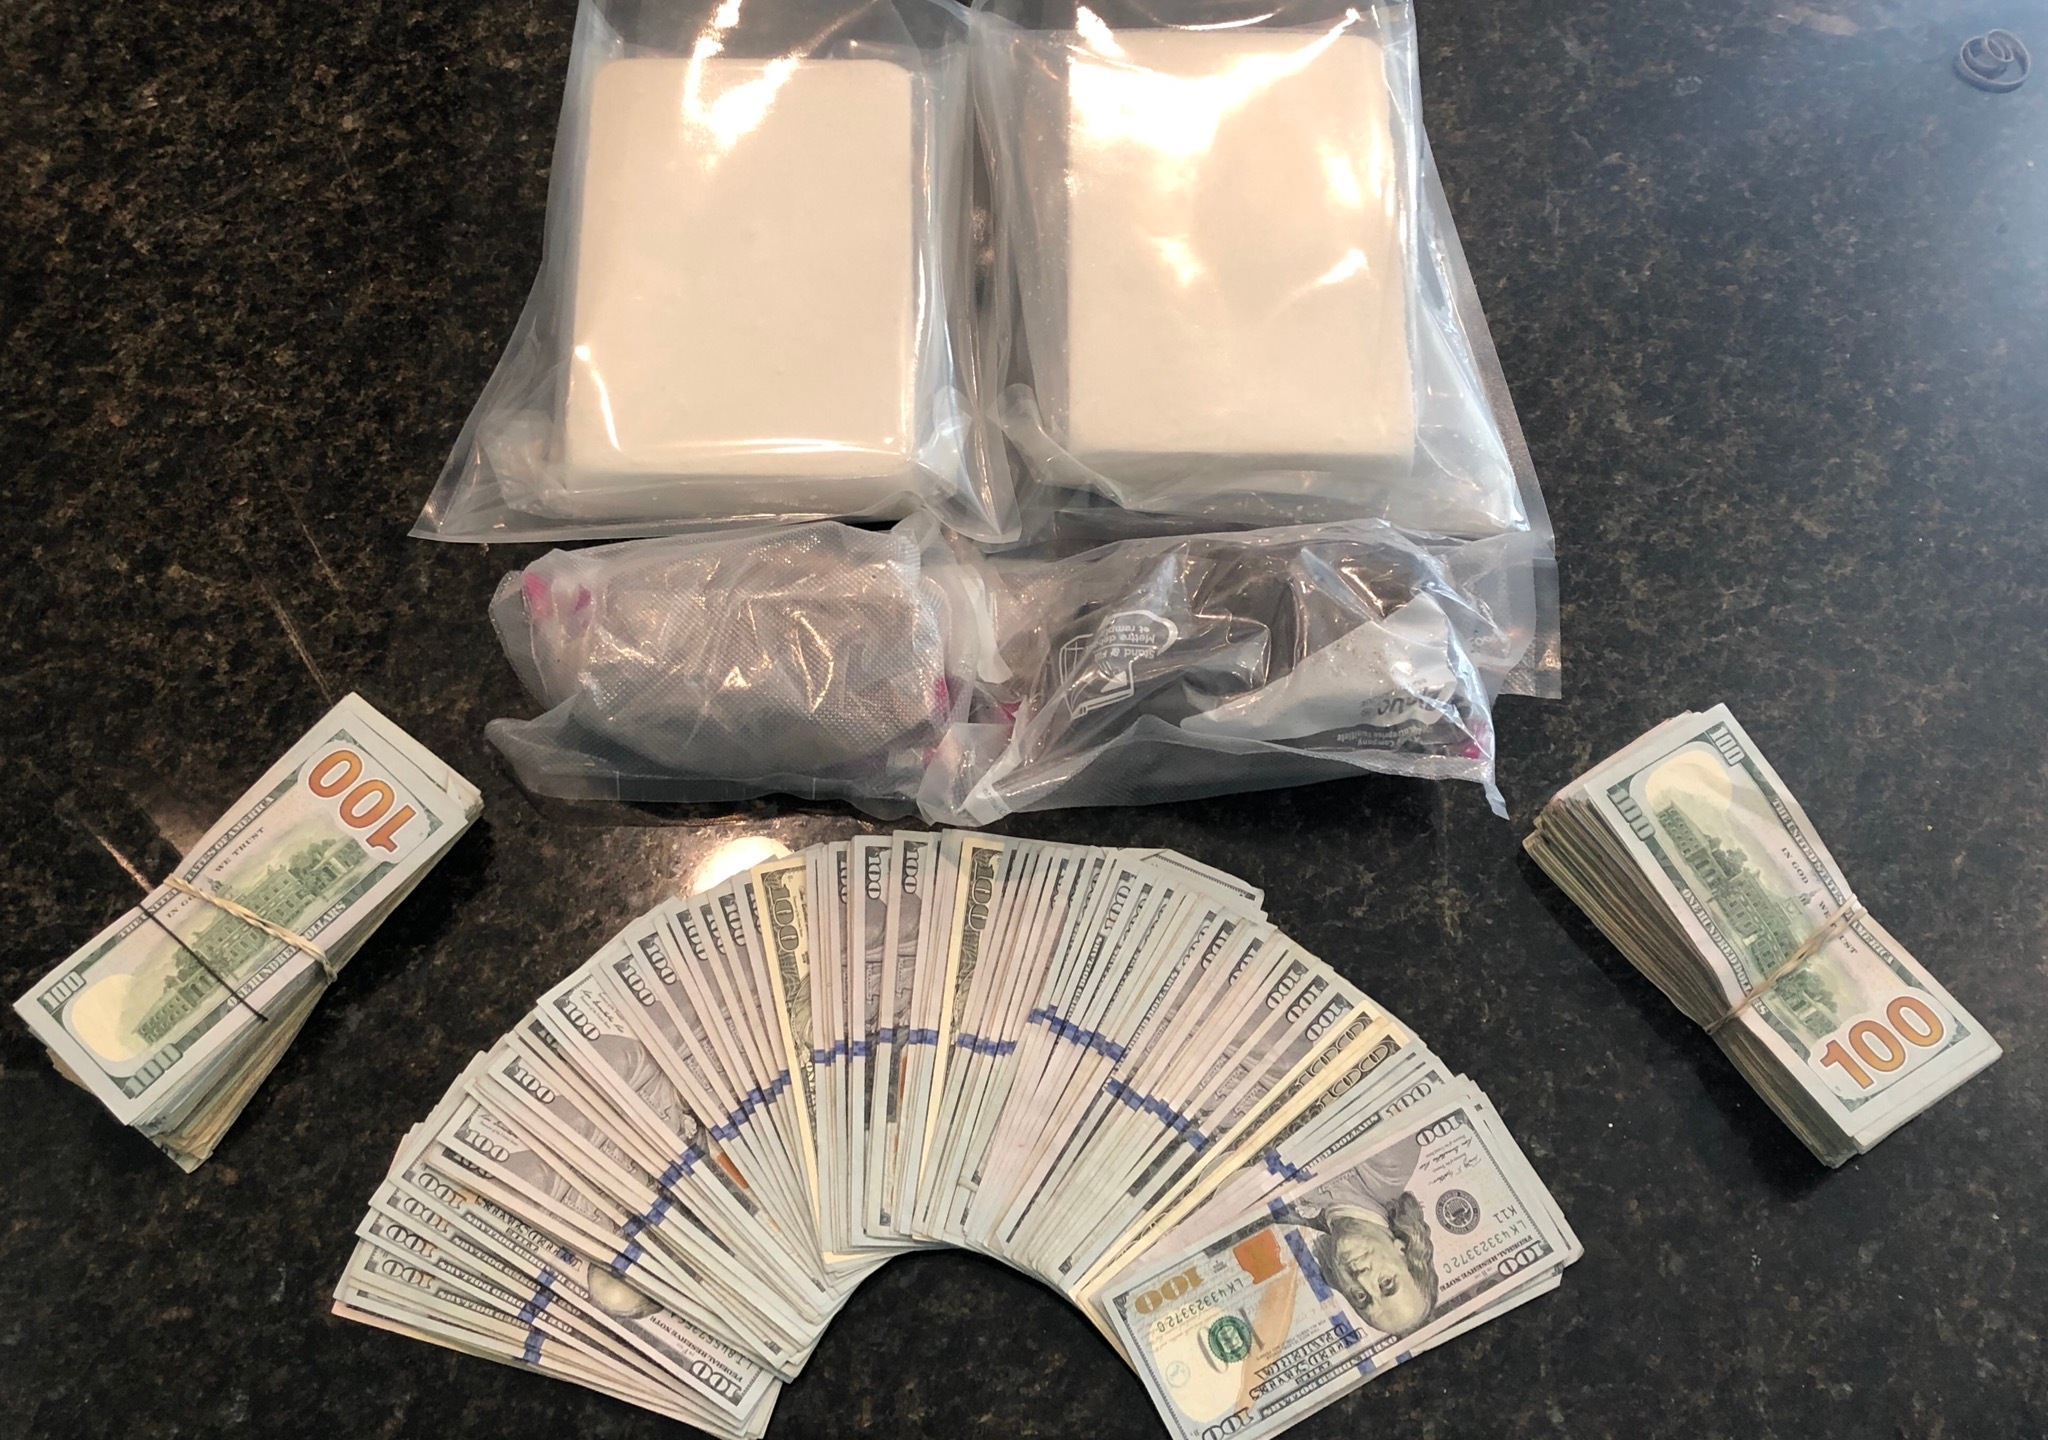 2 arrested, thousands in drugs seized in South Bakersfield